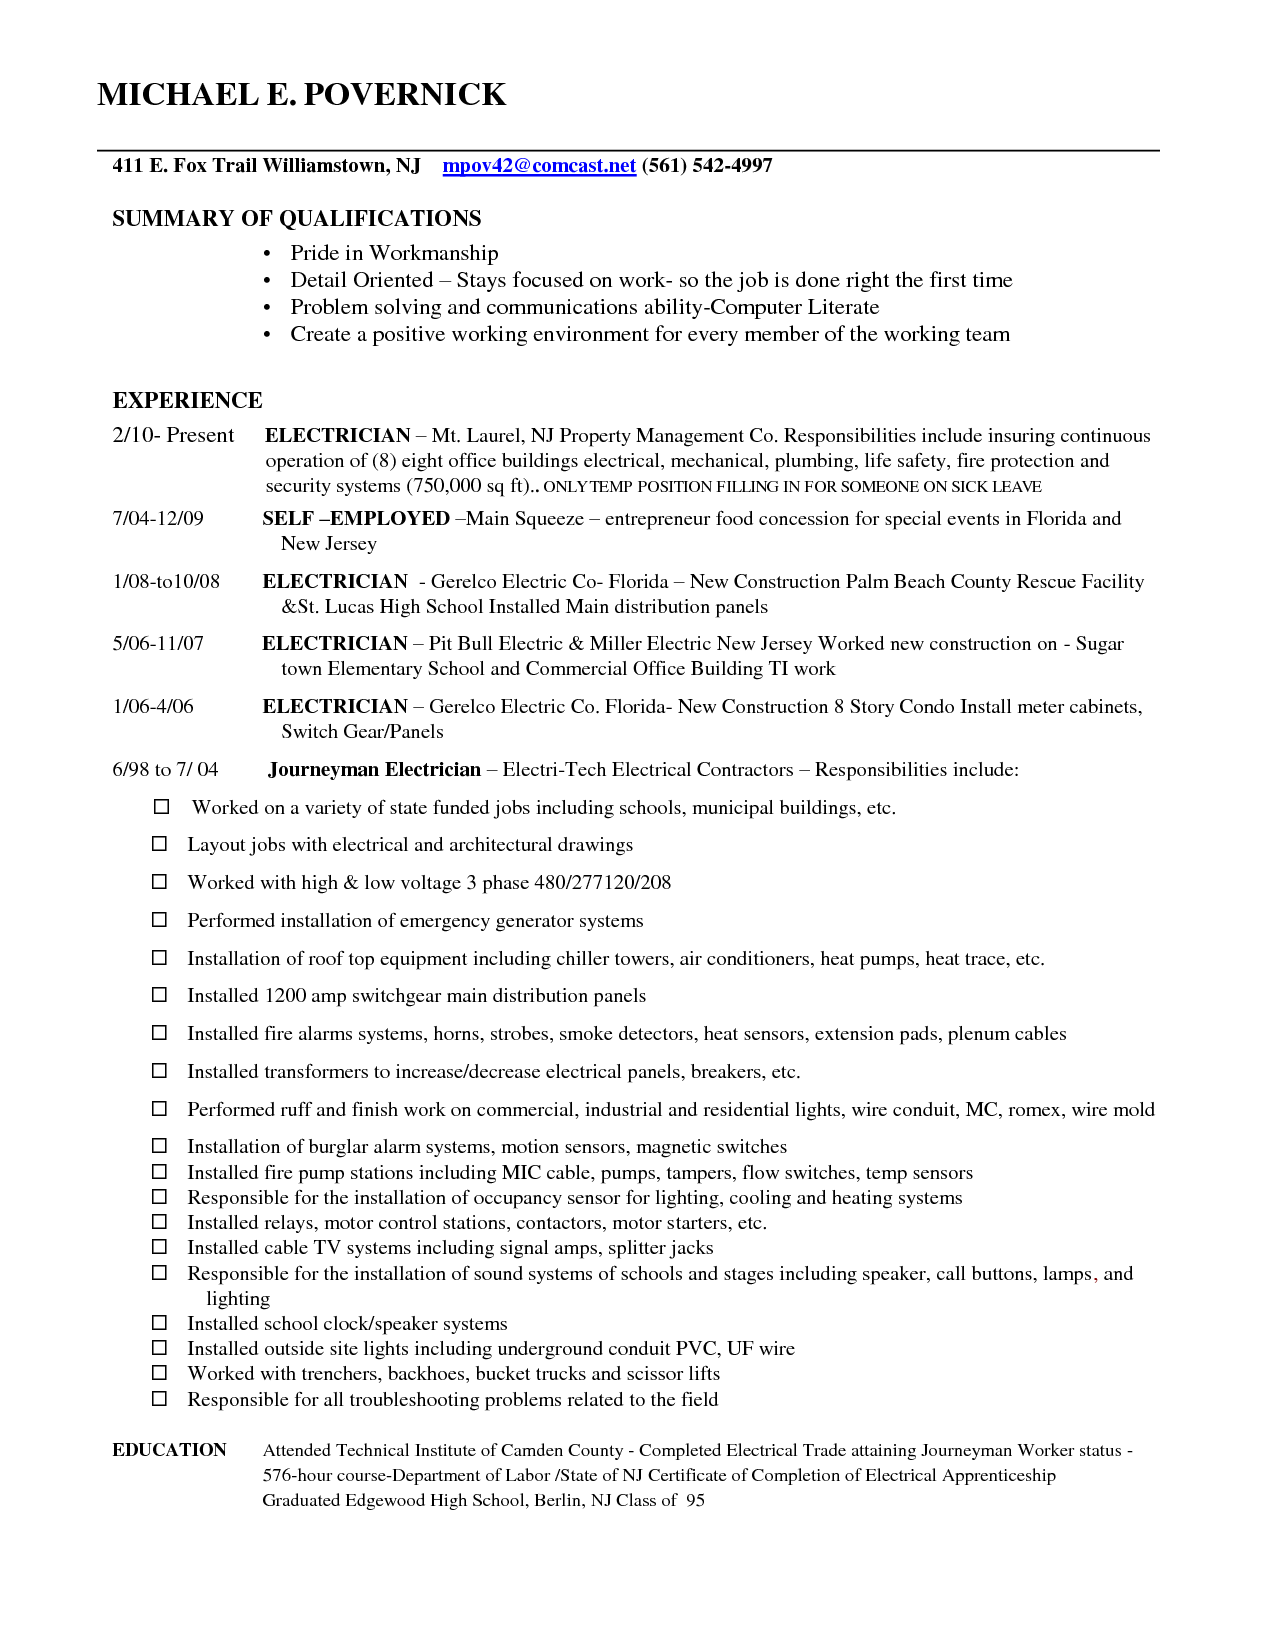 Self Employed Resume Template  Employment Resume